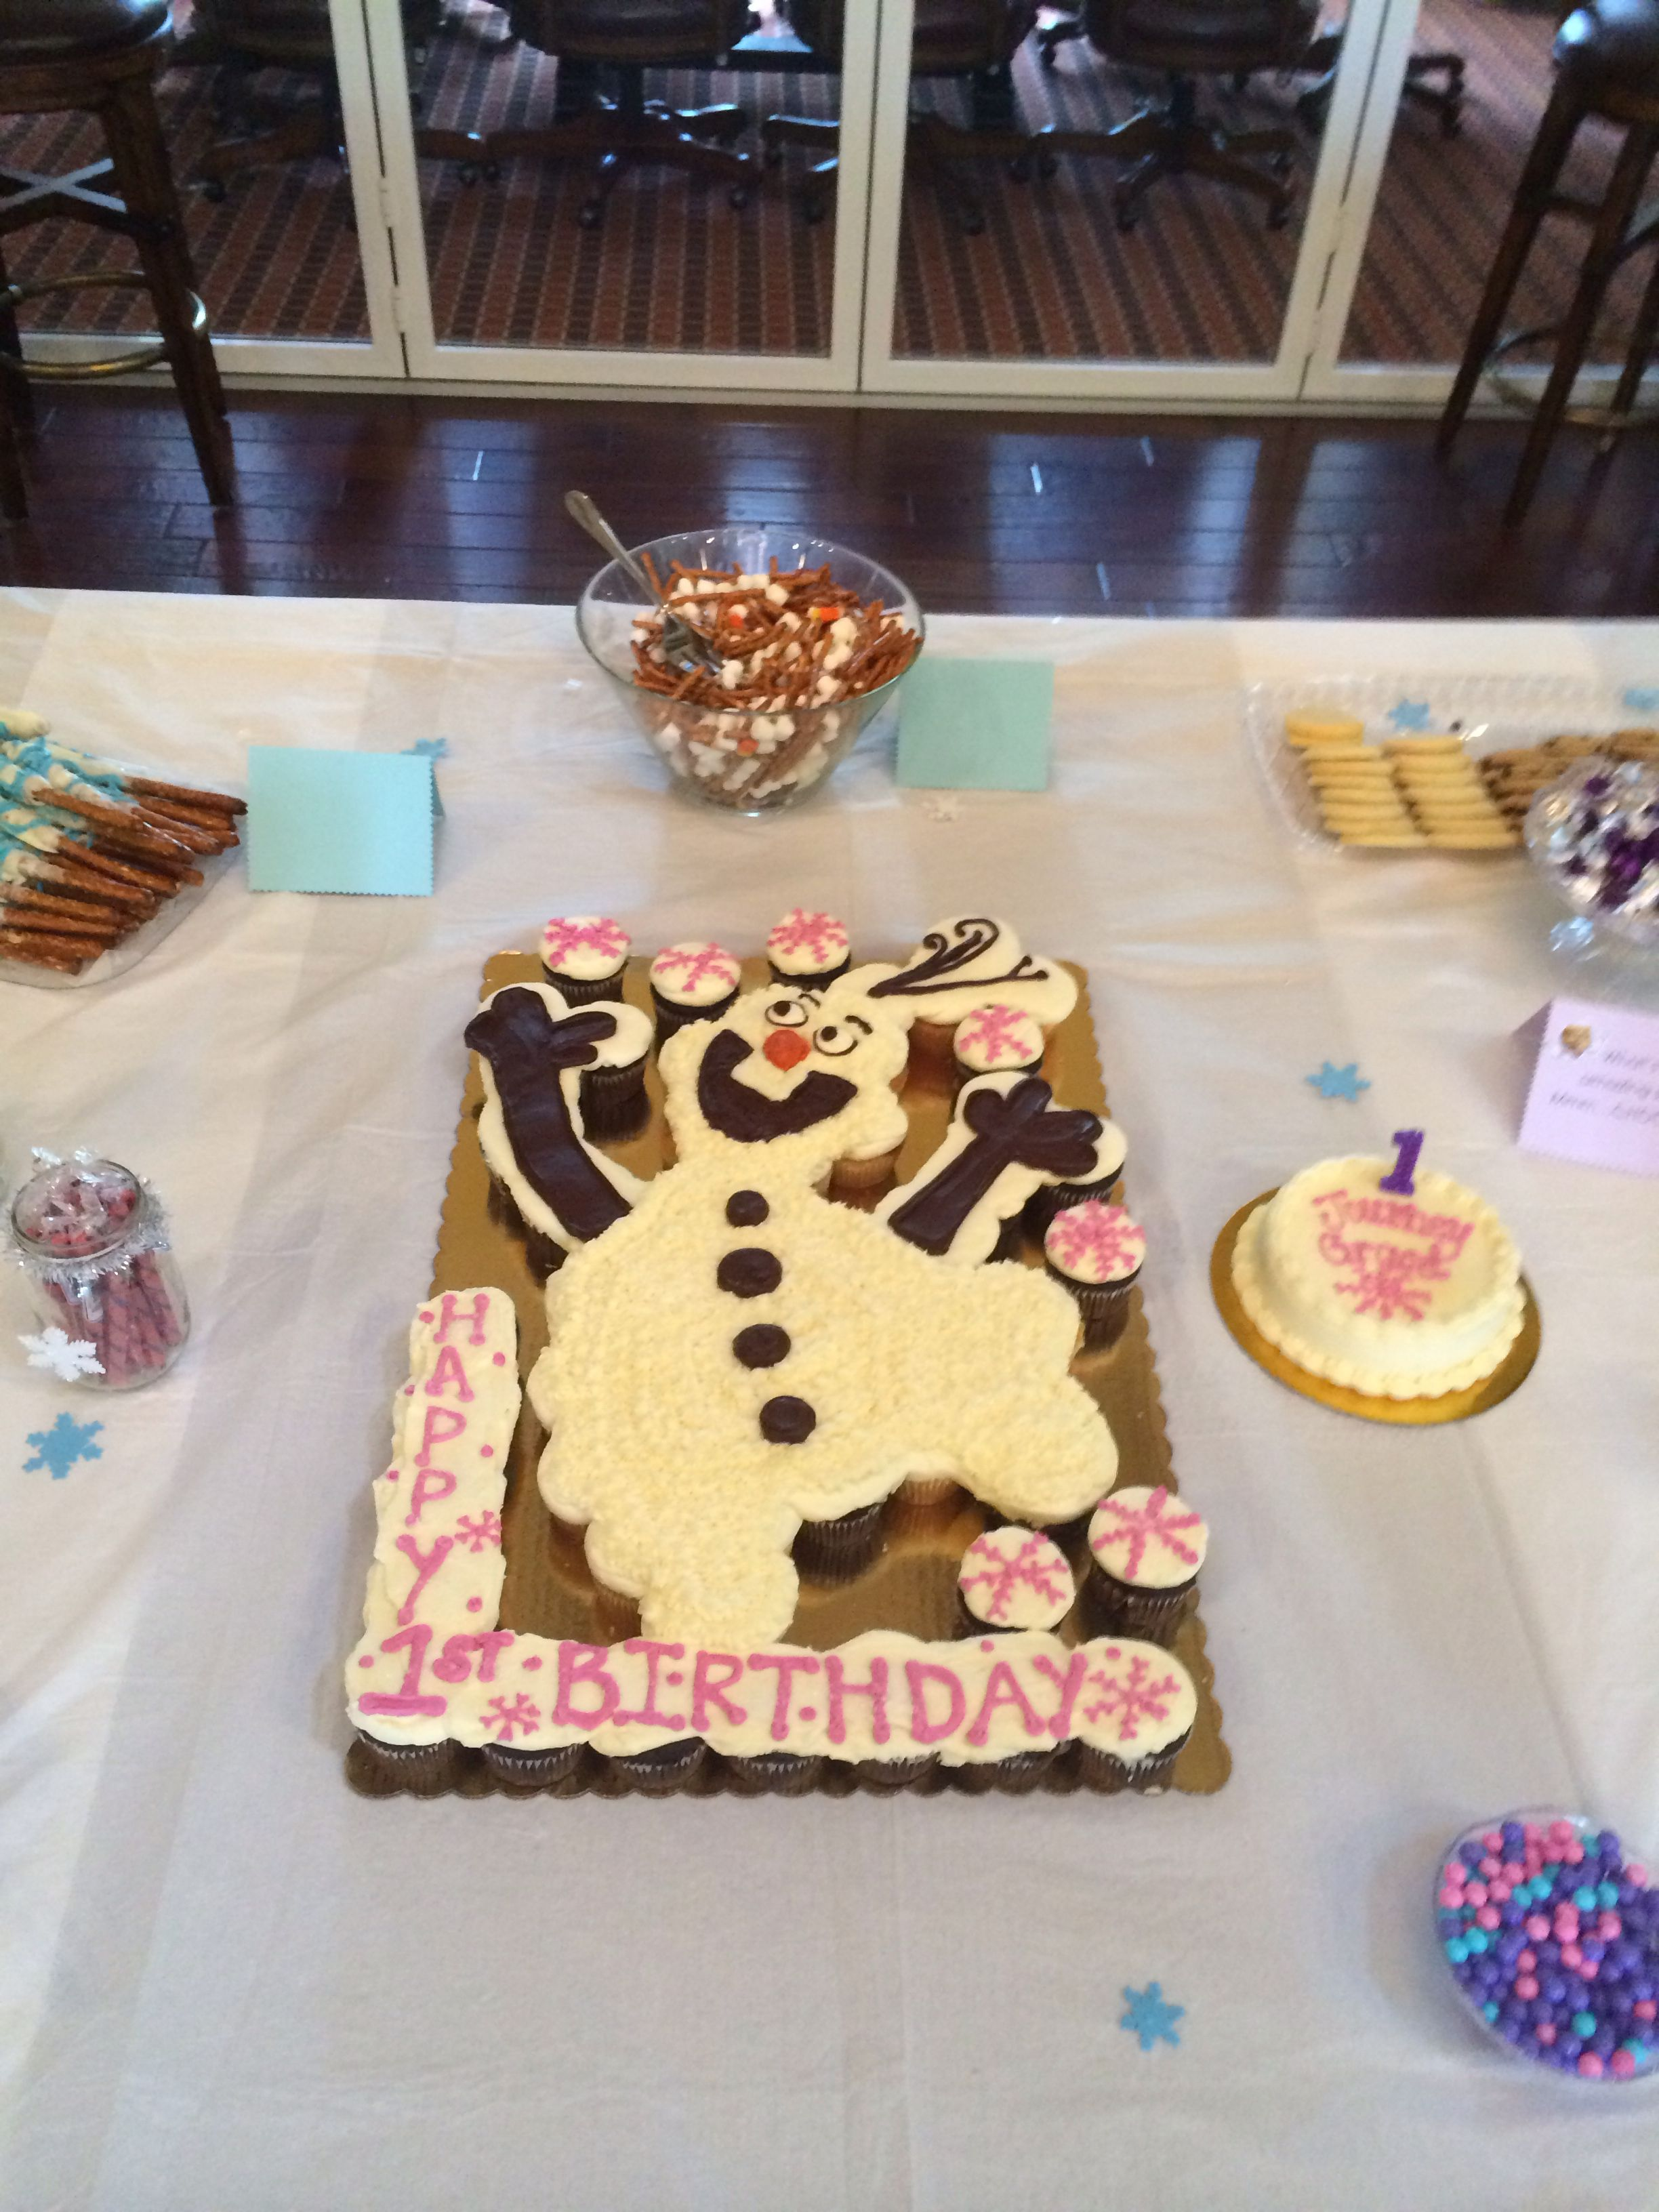 Journey graces first birthday olaf cupcake cake made by